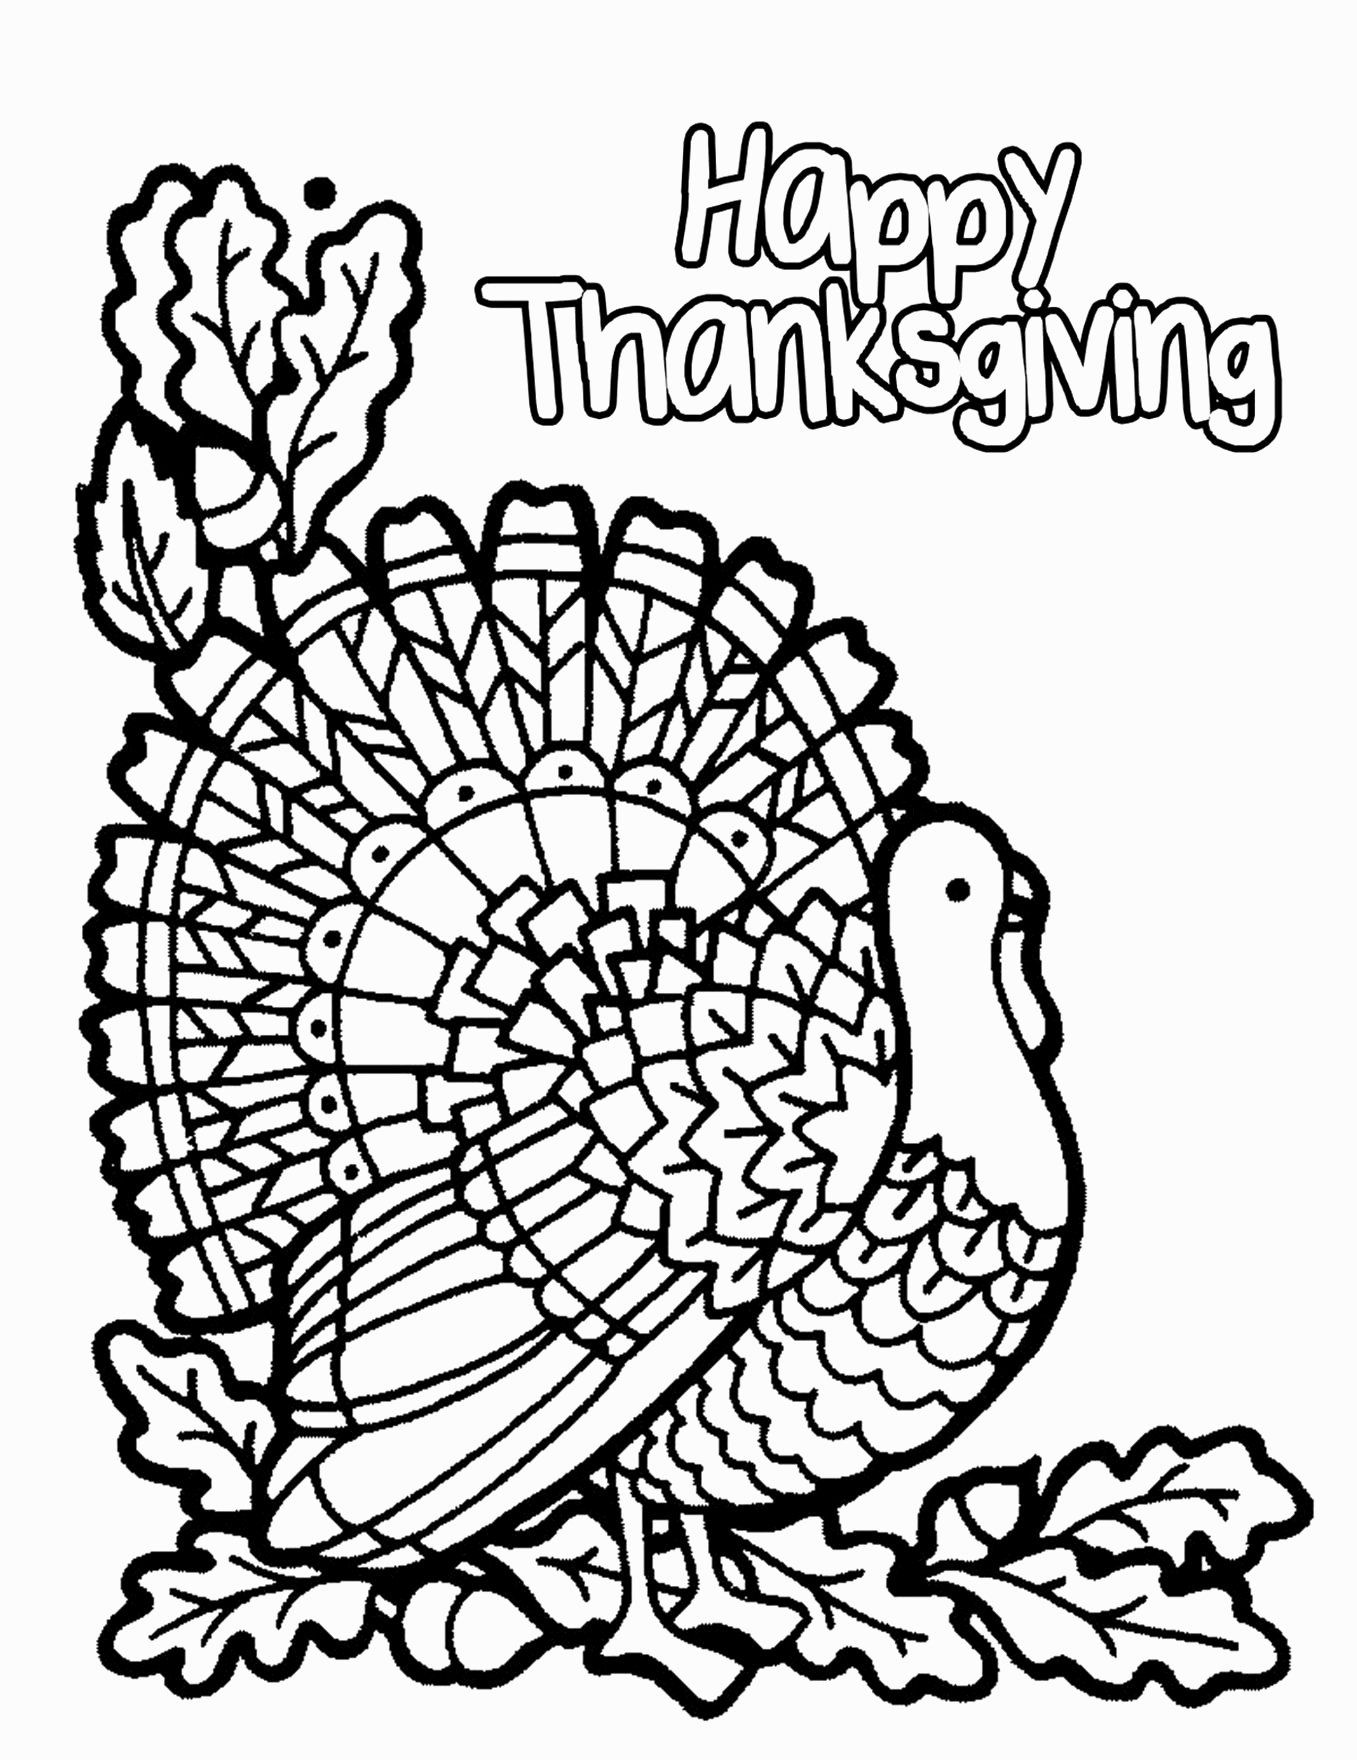 Free Printable Thanksgiving Coloring Placemats Elegant Thanksgiving Worksheets For Preschoolers 7th Grade Math Thanksgiving